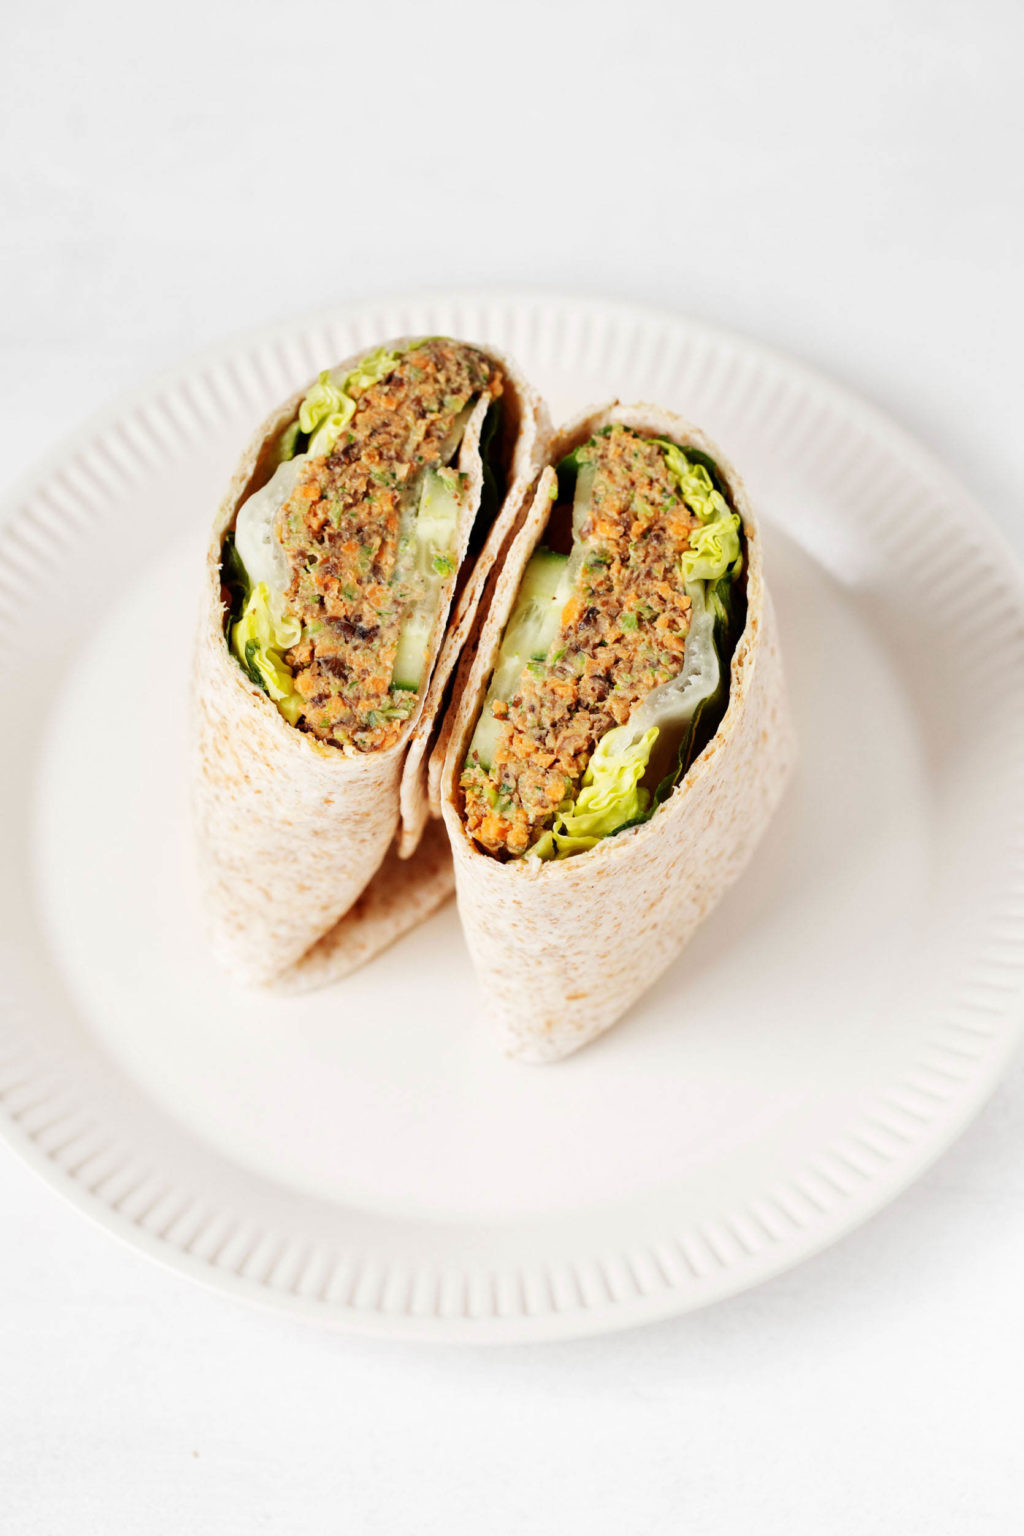 A vegan lentil tahini wrap has been sliced in half. It's placed, cut side up, on a cream colored serving dish.